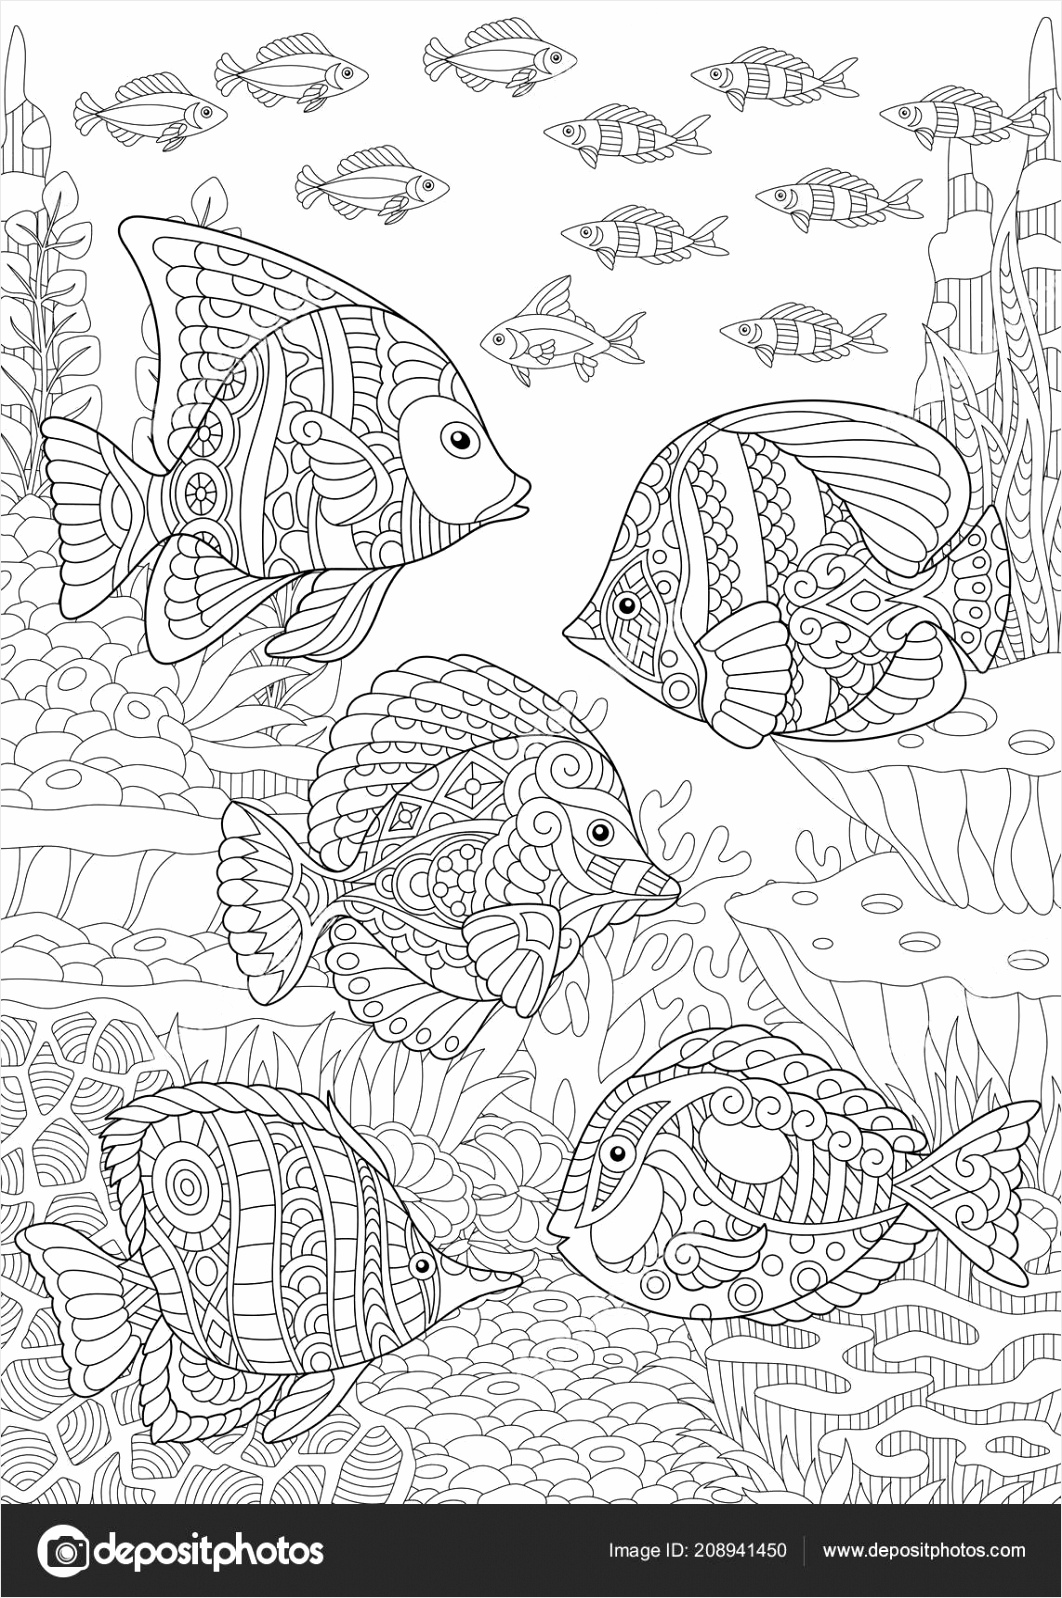 depositphotos stock illustration coloring page coloring book colouring wjuto